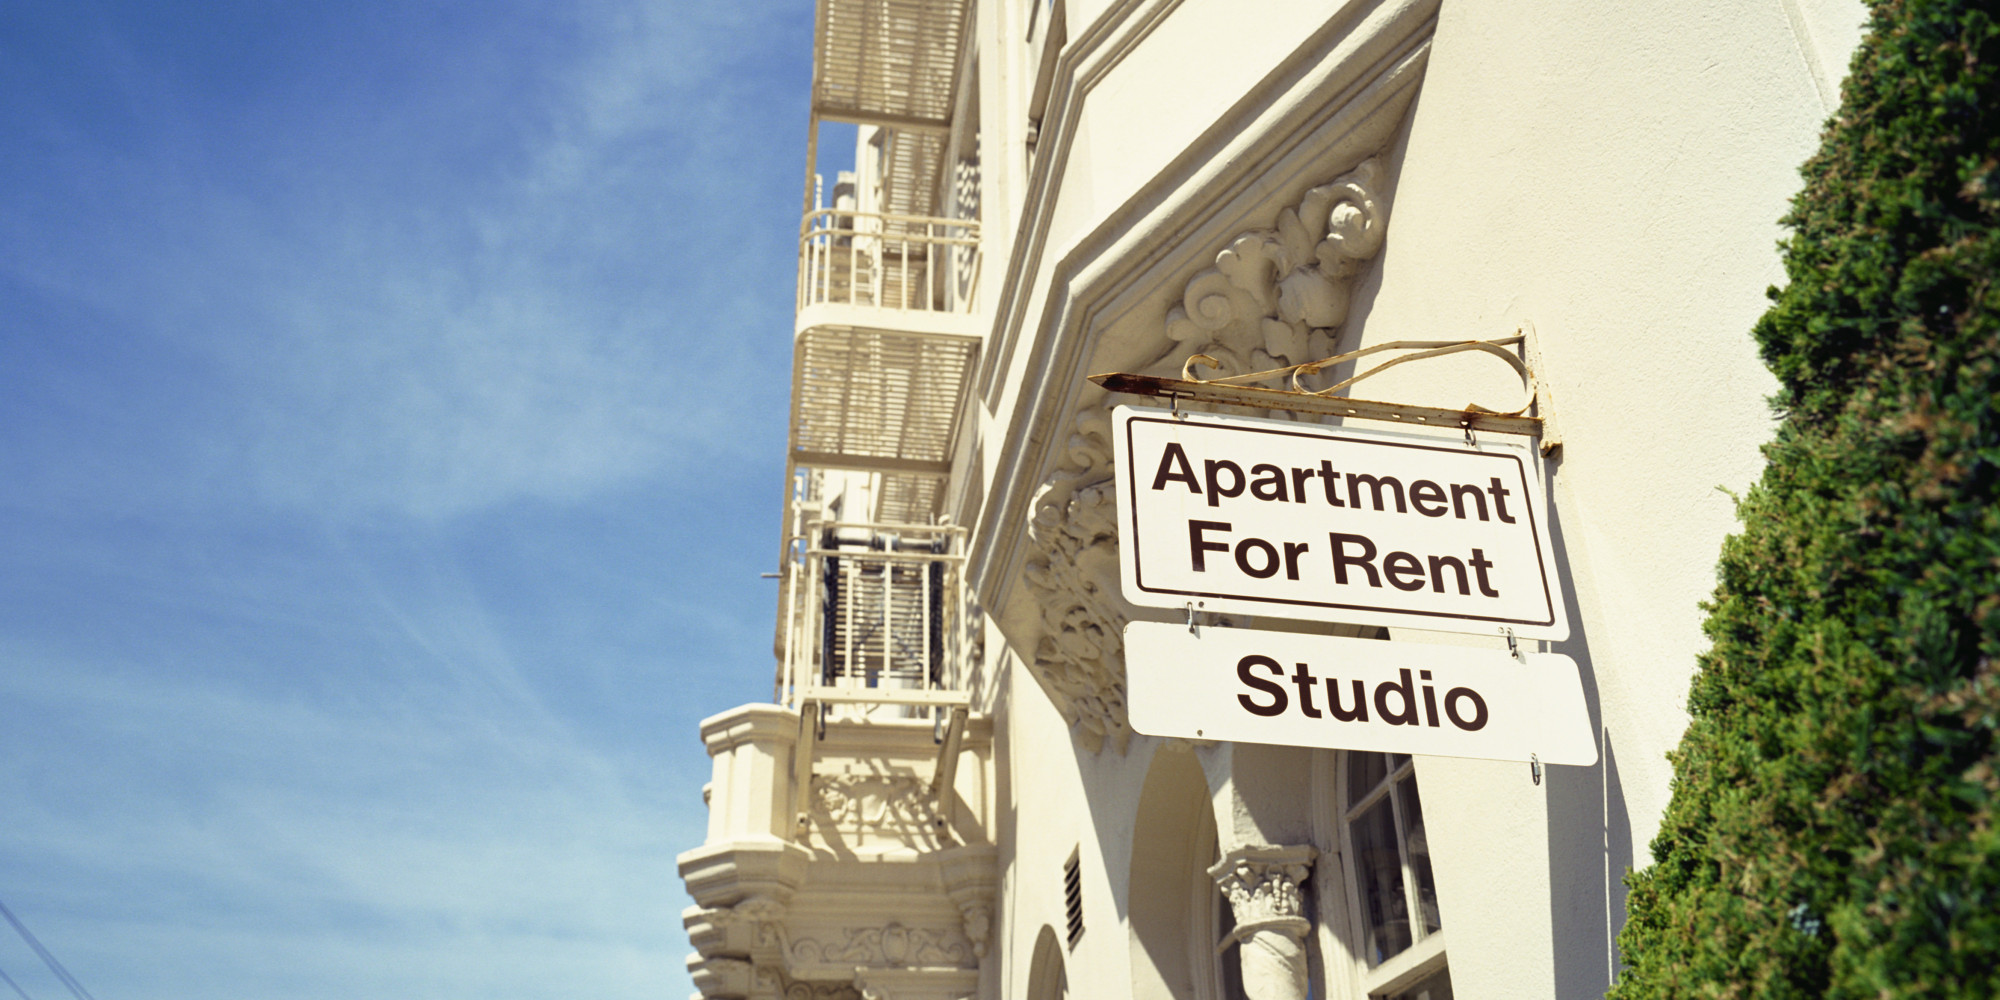 How To Afford A Roommate Free Apartment Really Huffpost